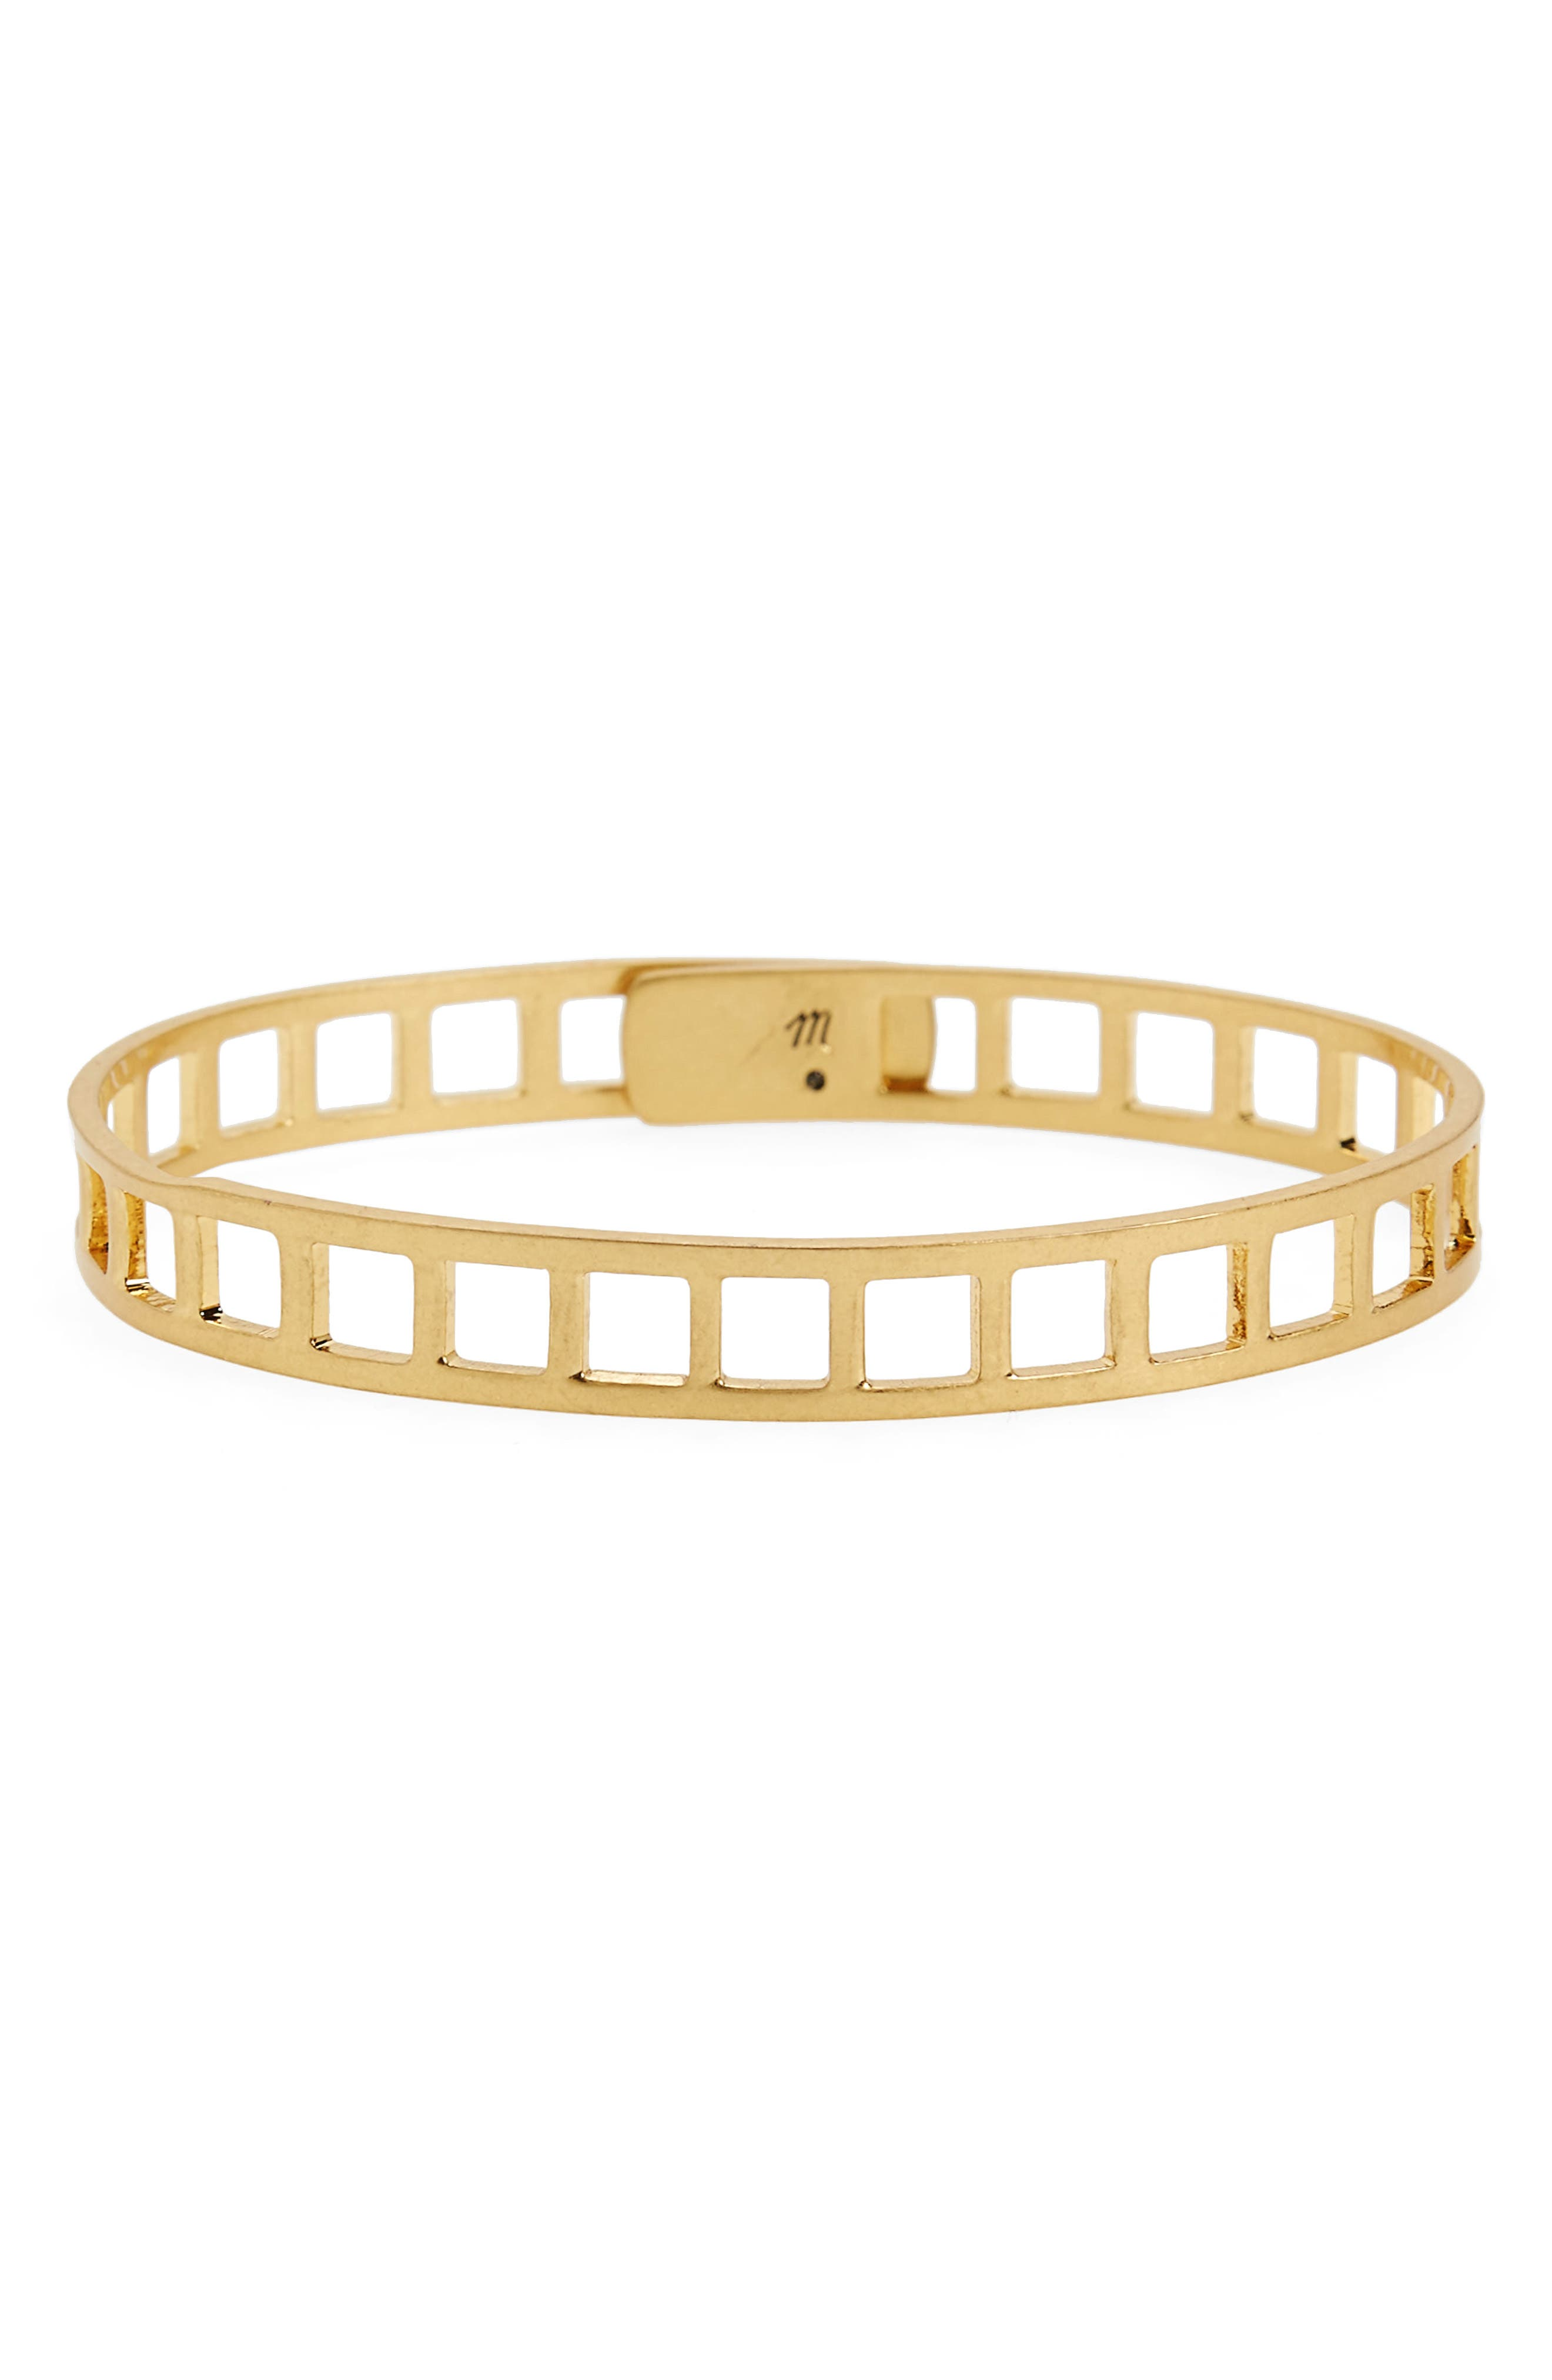 Tracecraft Bangle,                         Main,                         color, Ladder Cut Out